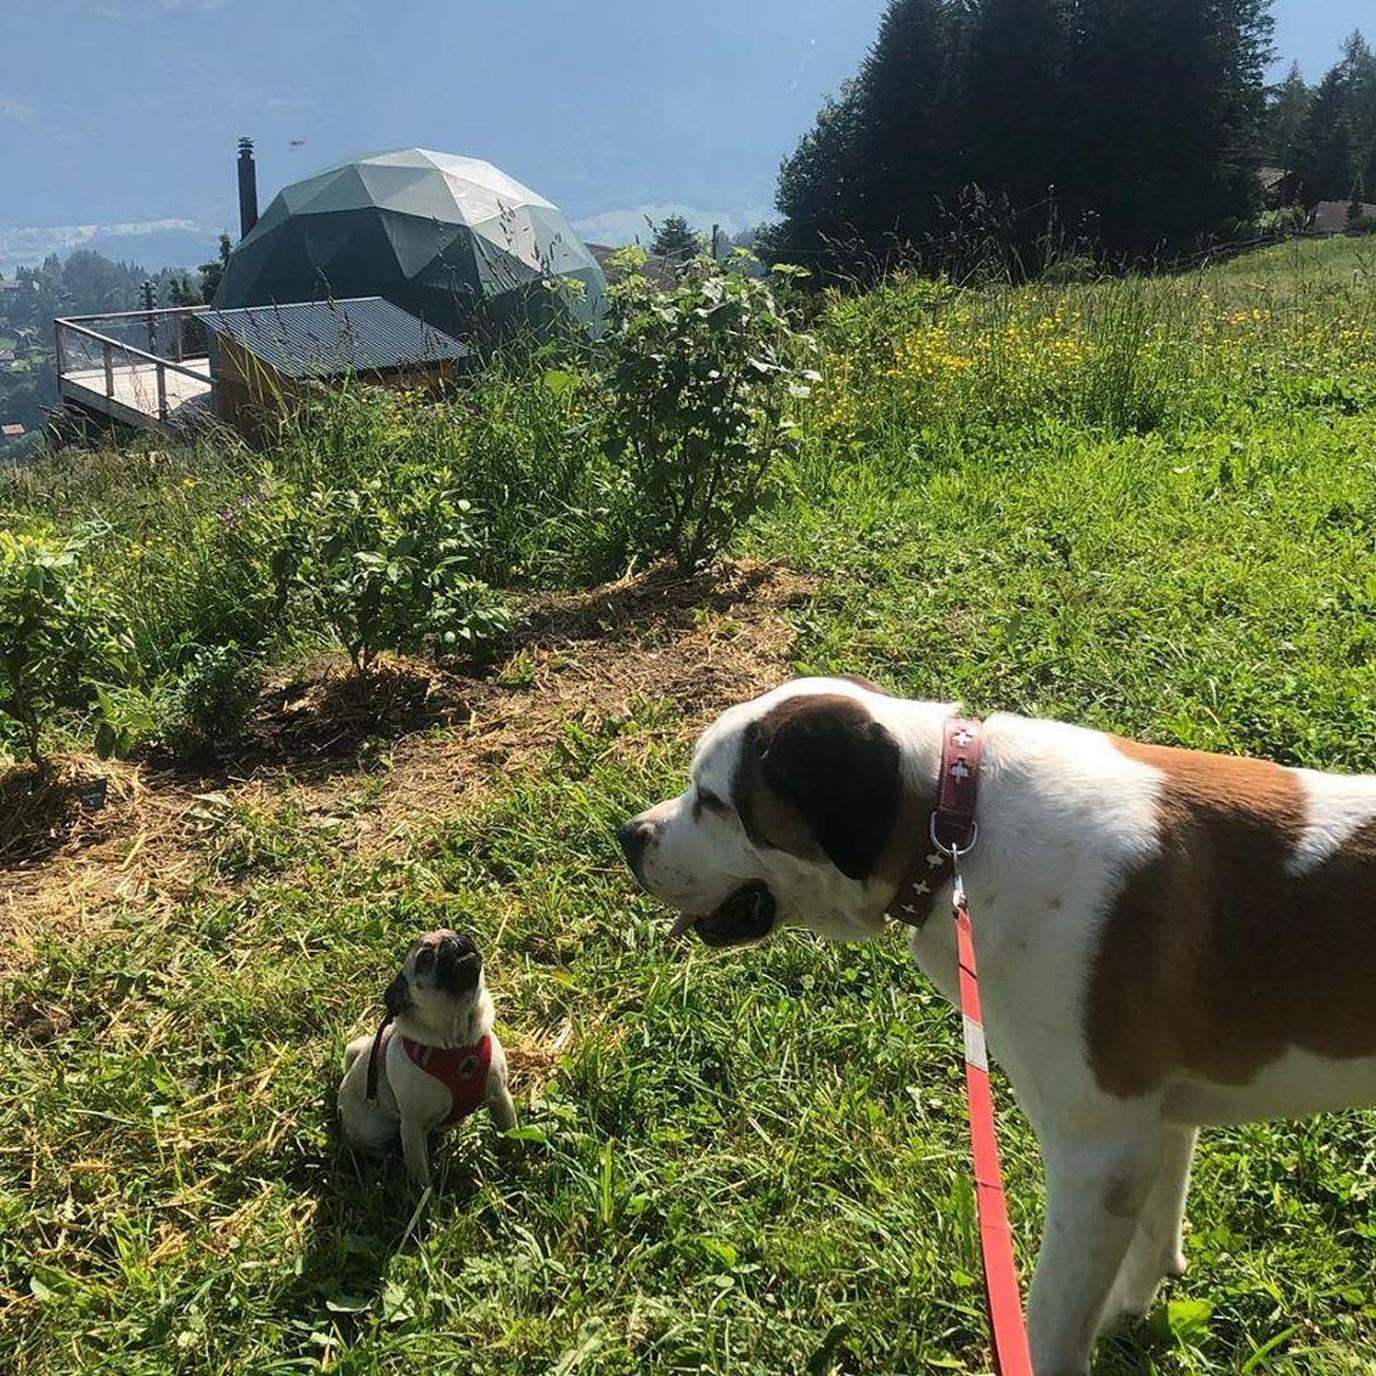 During the summer, dogs are permitted at Whitepod Eco Luxury Hotel in the Swiss Alps.